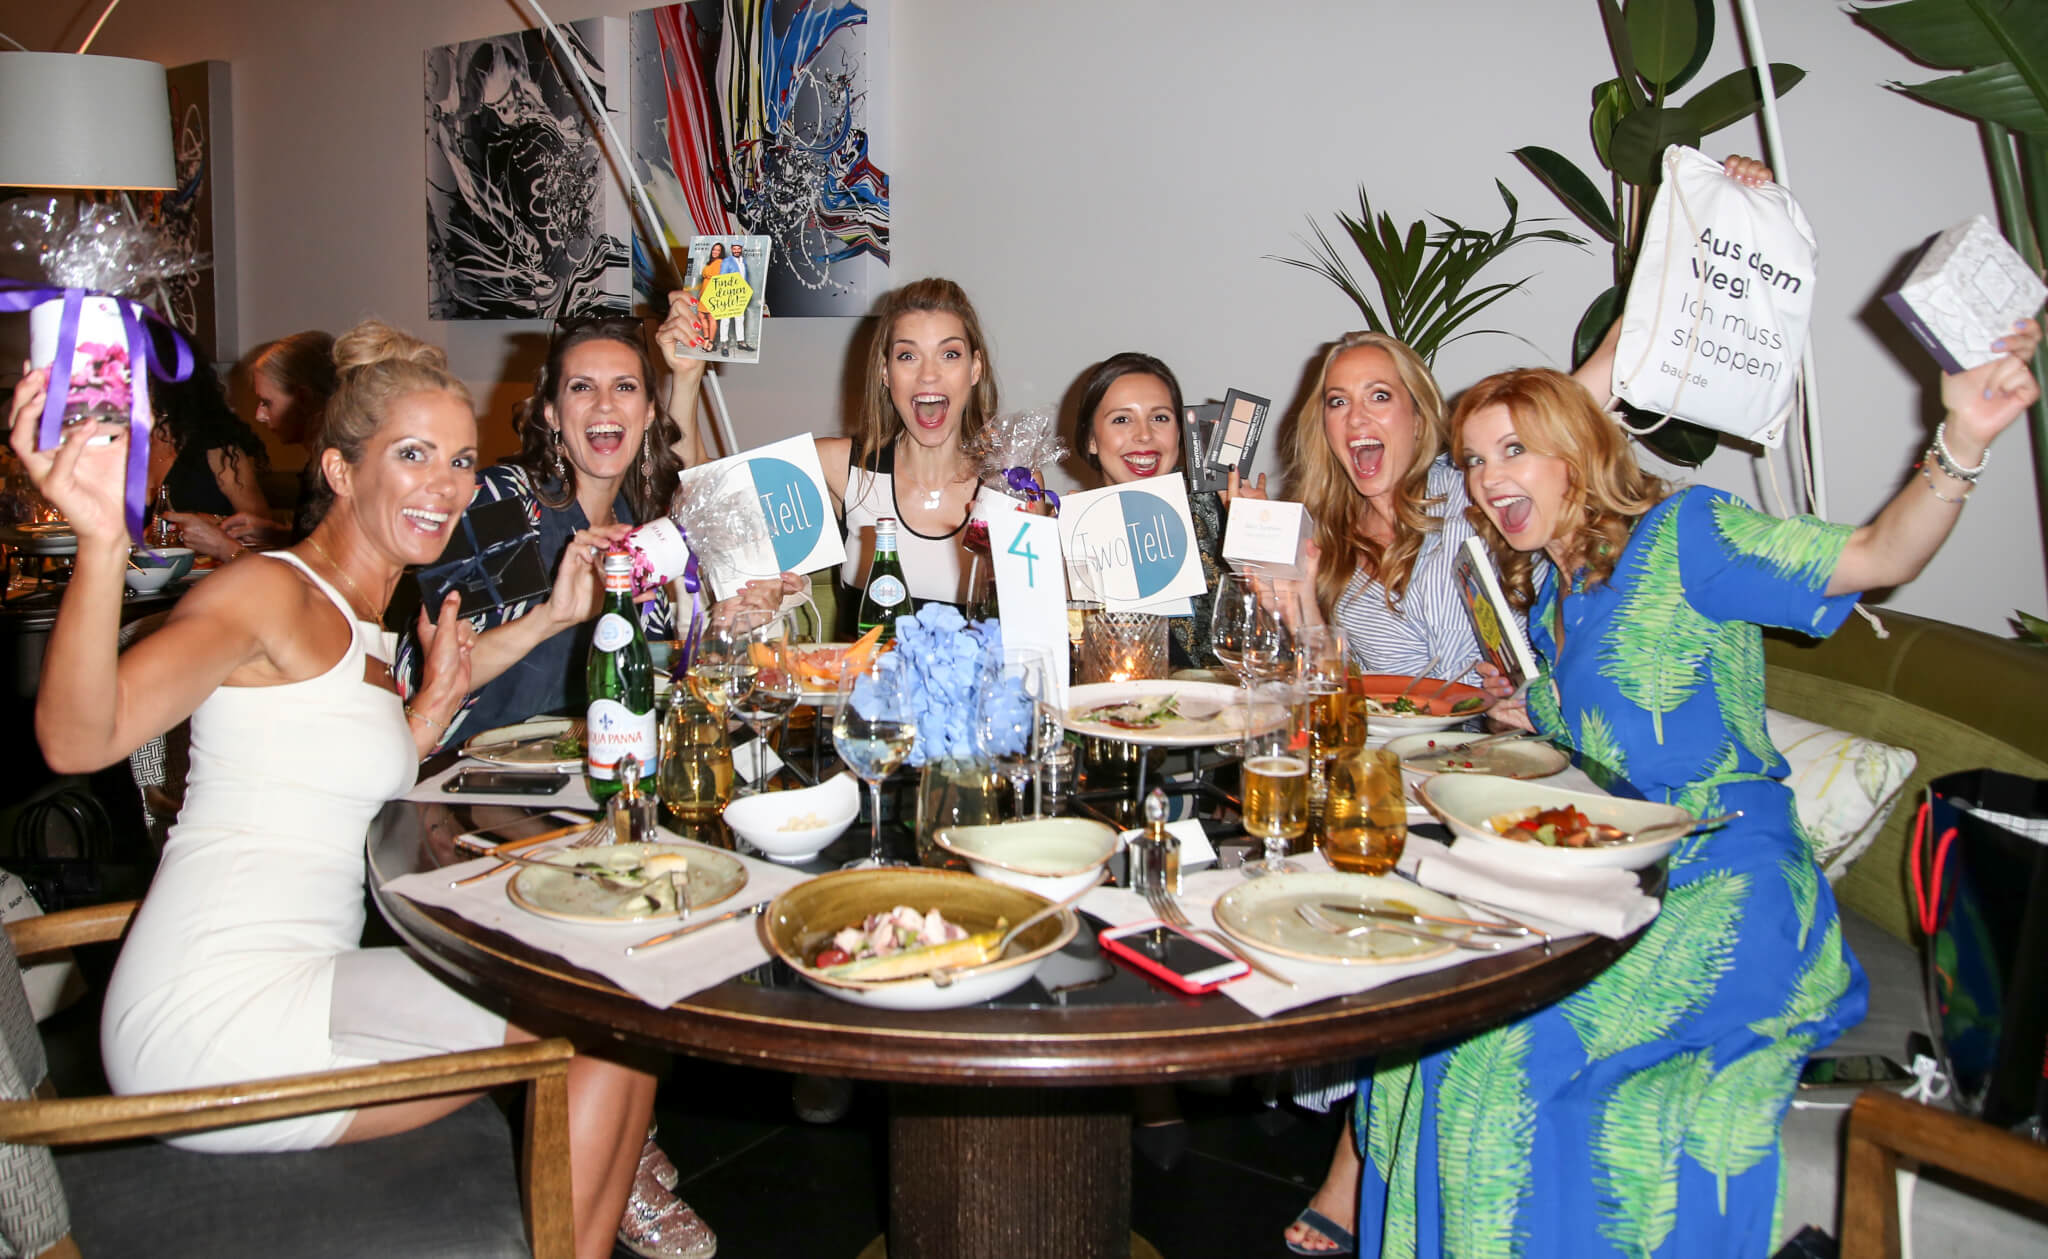 Our TwoTell ladies dinner! Networking women equals girls power!